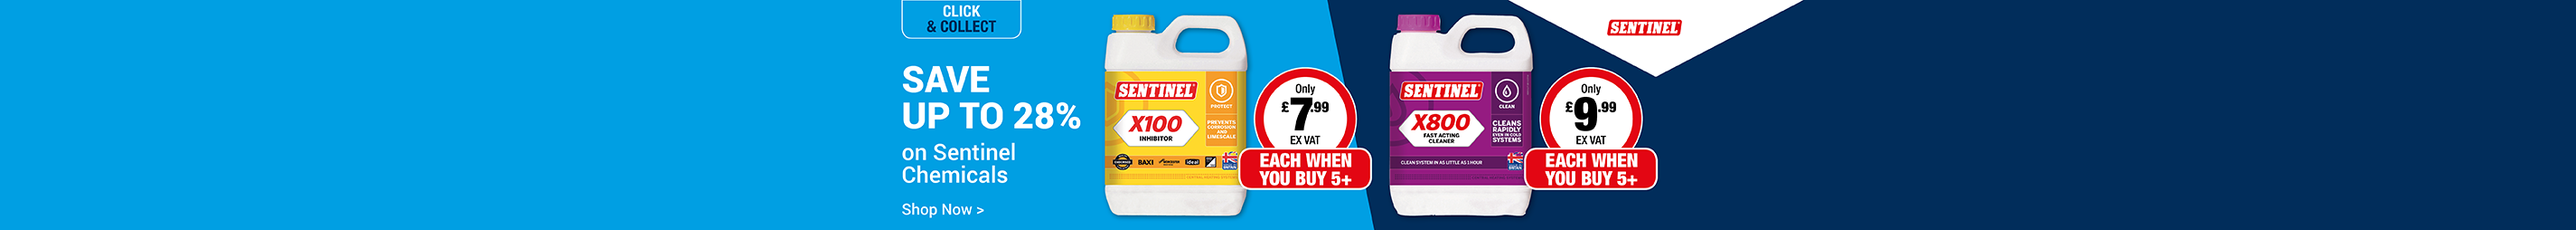 Save up to 28% Sentinel Chemicals